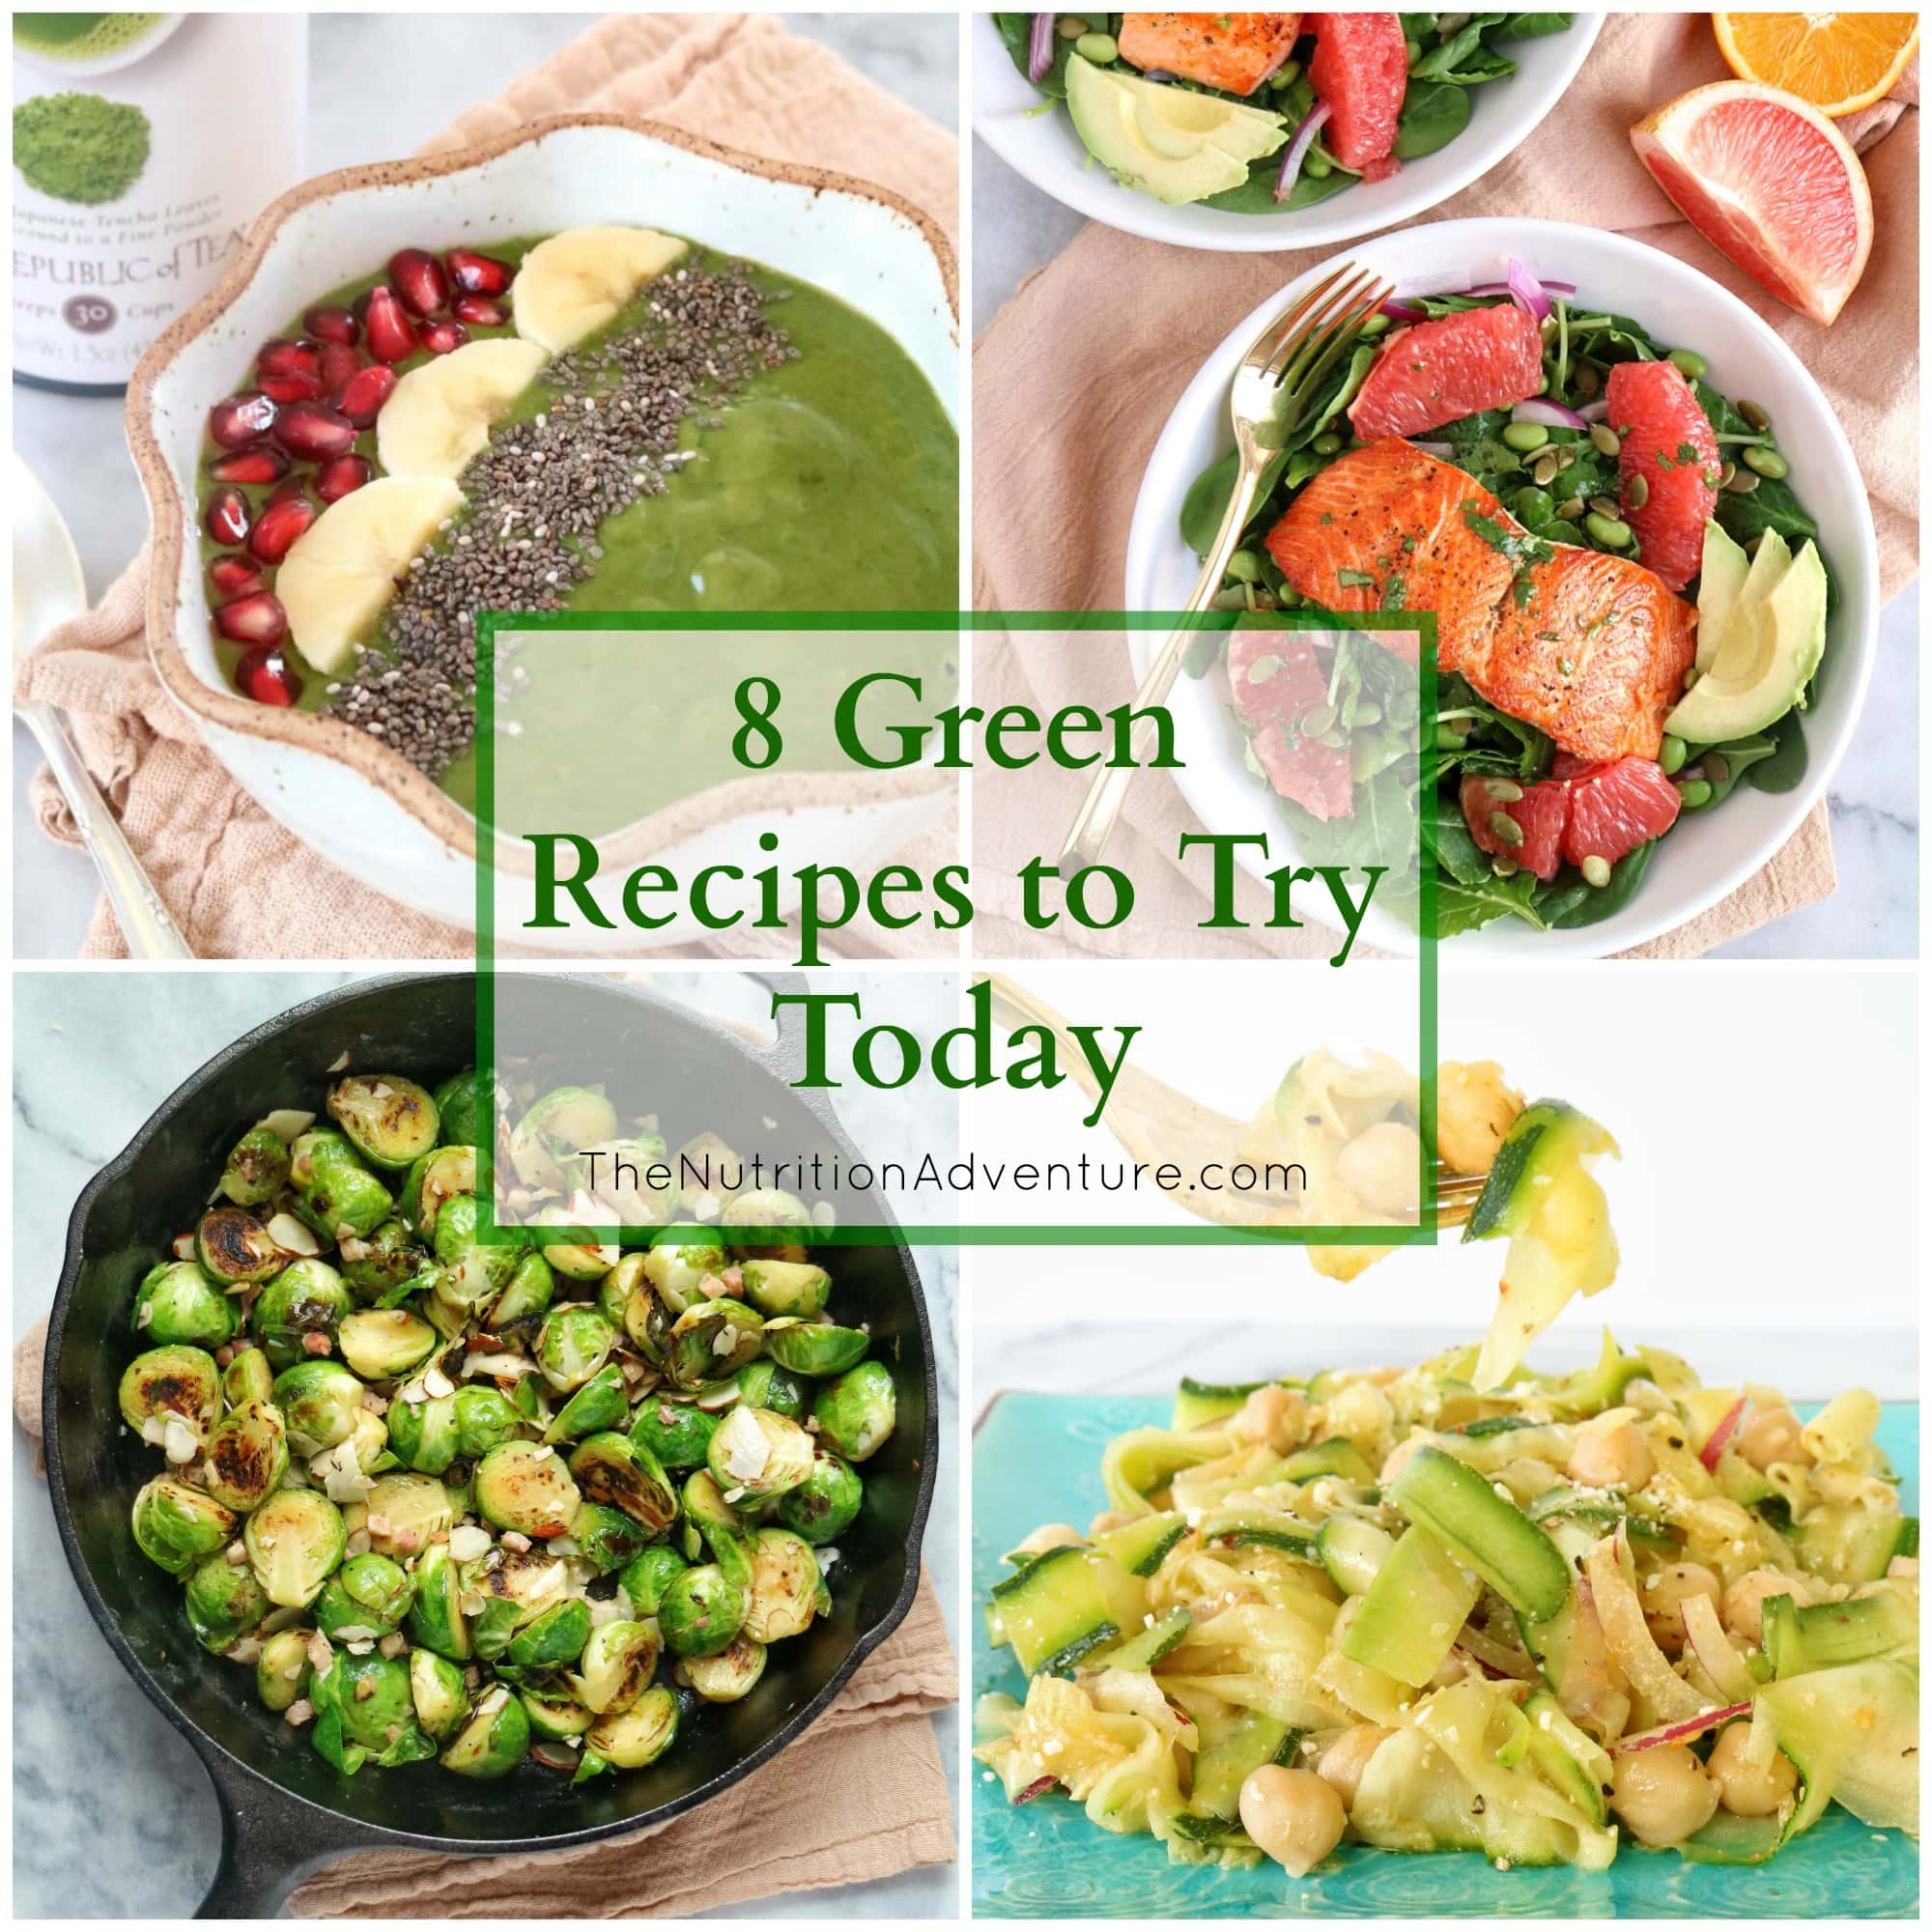 Eating Green + 8 Green Recipes To Try Today » The